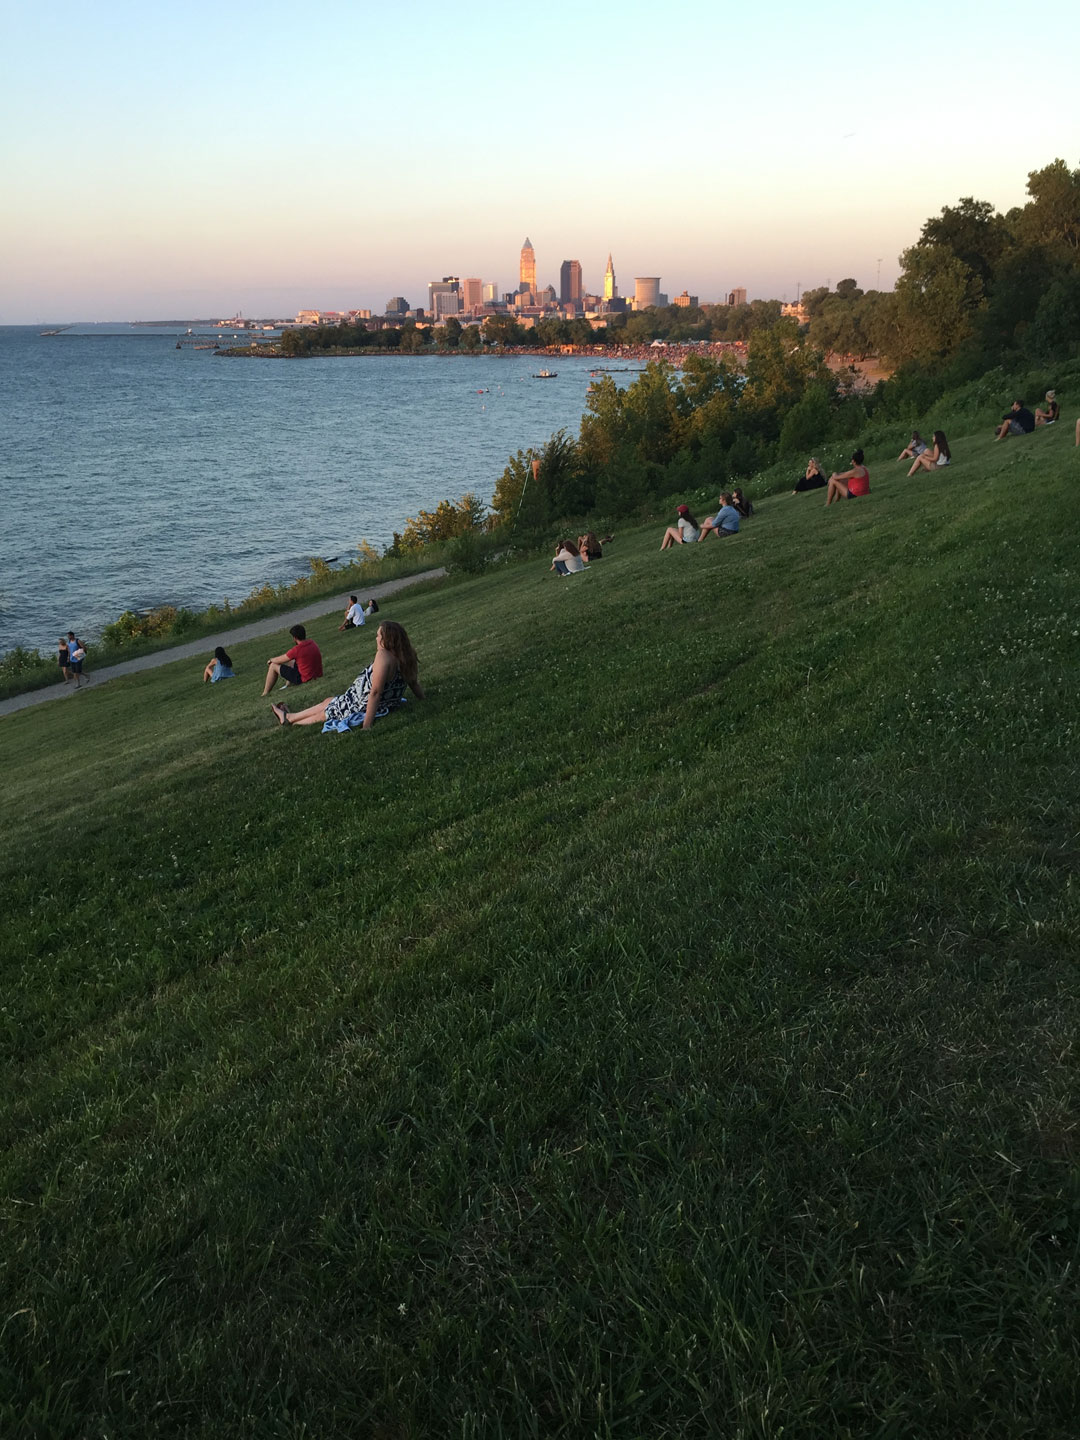 Cleveland had a bronze-gold glow that evening.